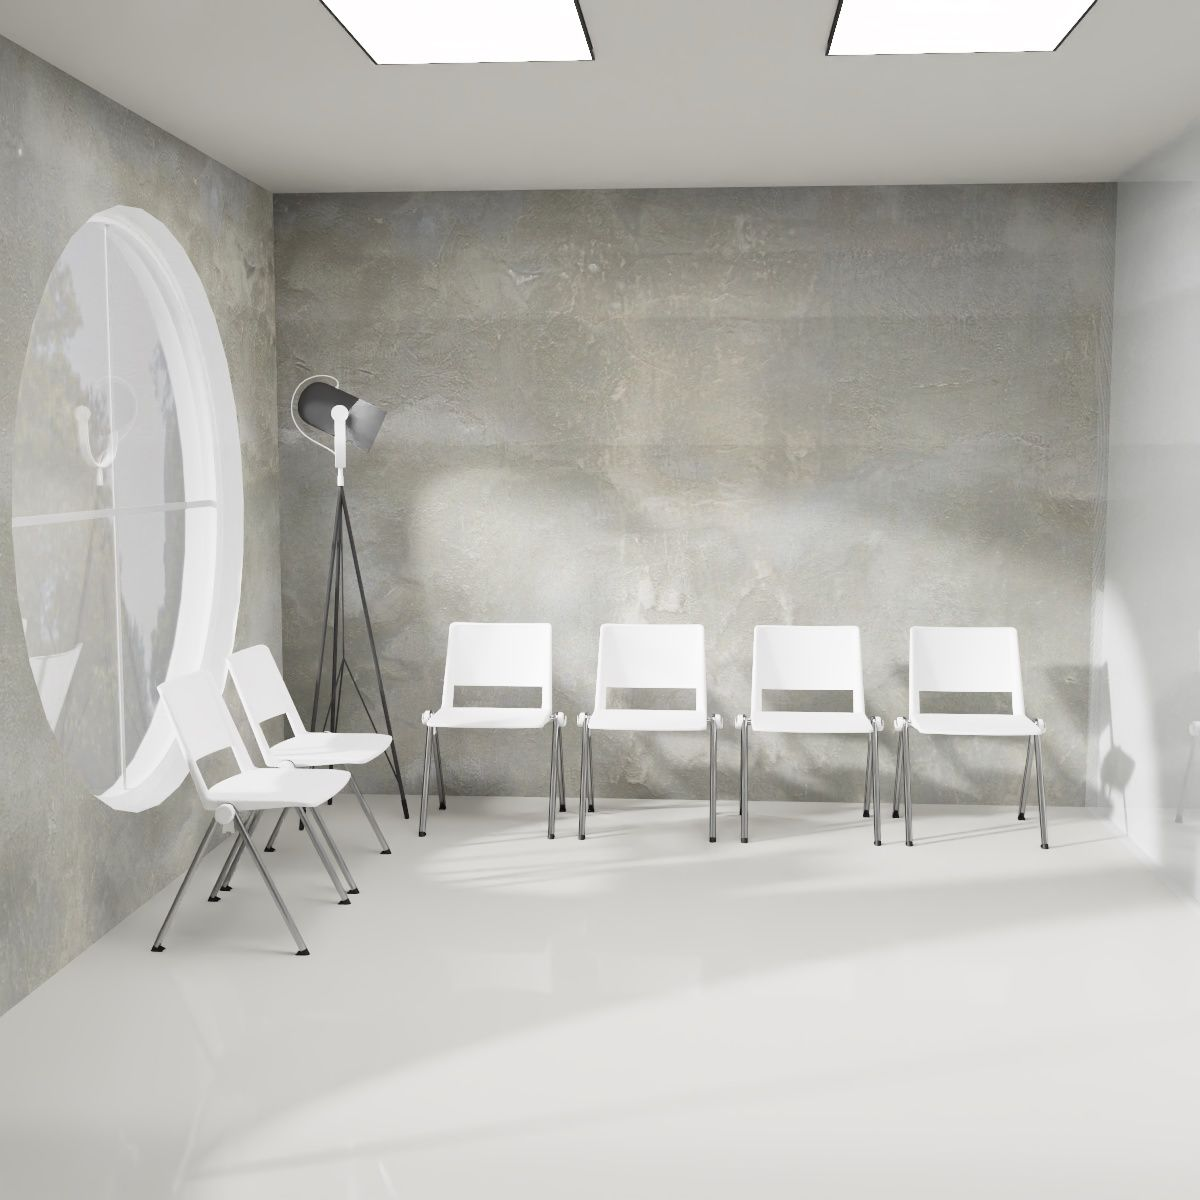 Shop the Look | Industrial Design. Cleaner und steriler Arztpraxis-Style.